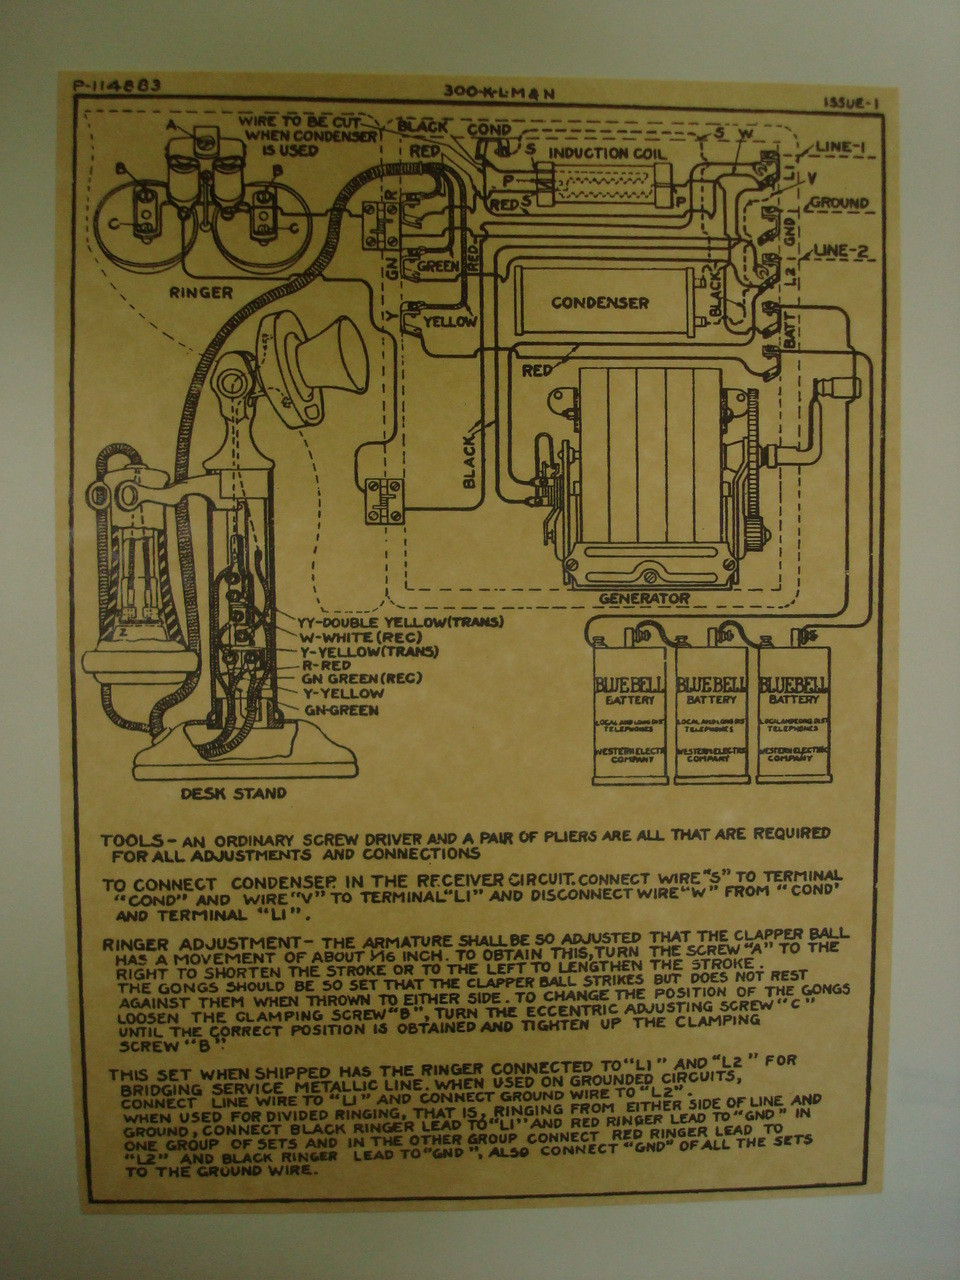 candlestick phone wiring wiring diagrams scematic 110 block wiring diagram antique phone wiring diagram [ 960 x 1280 Pixel ]